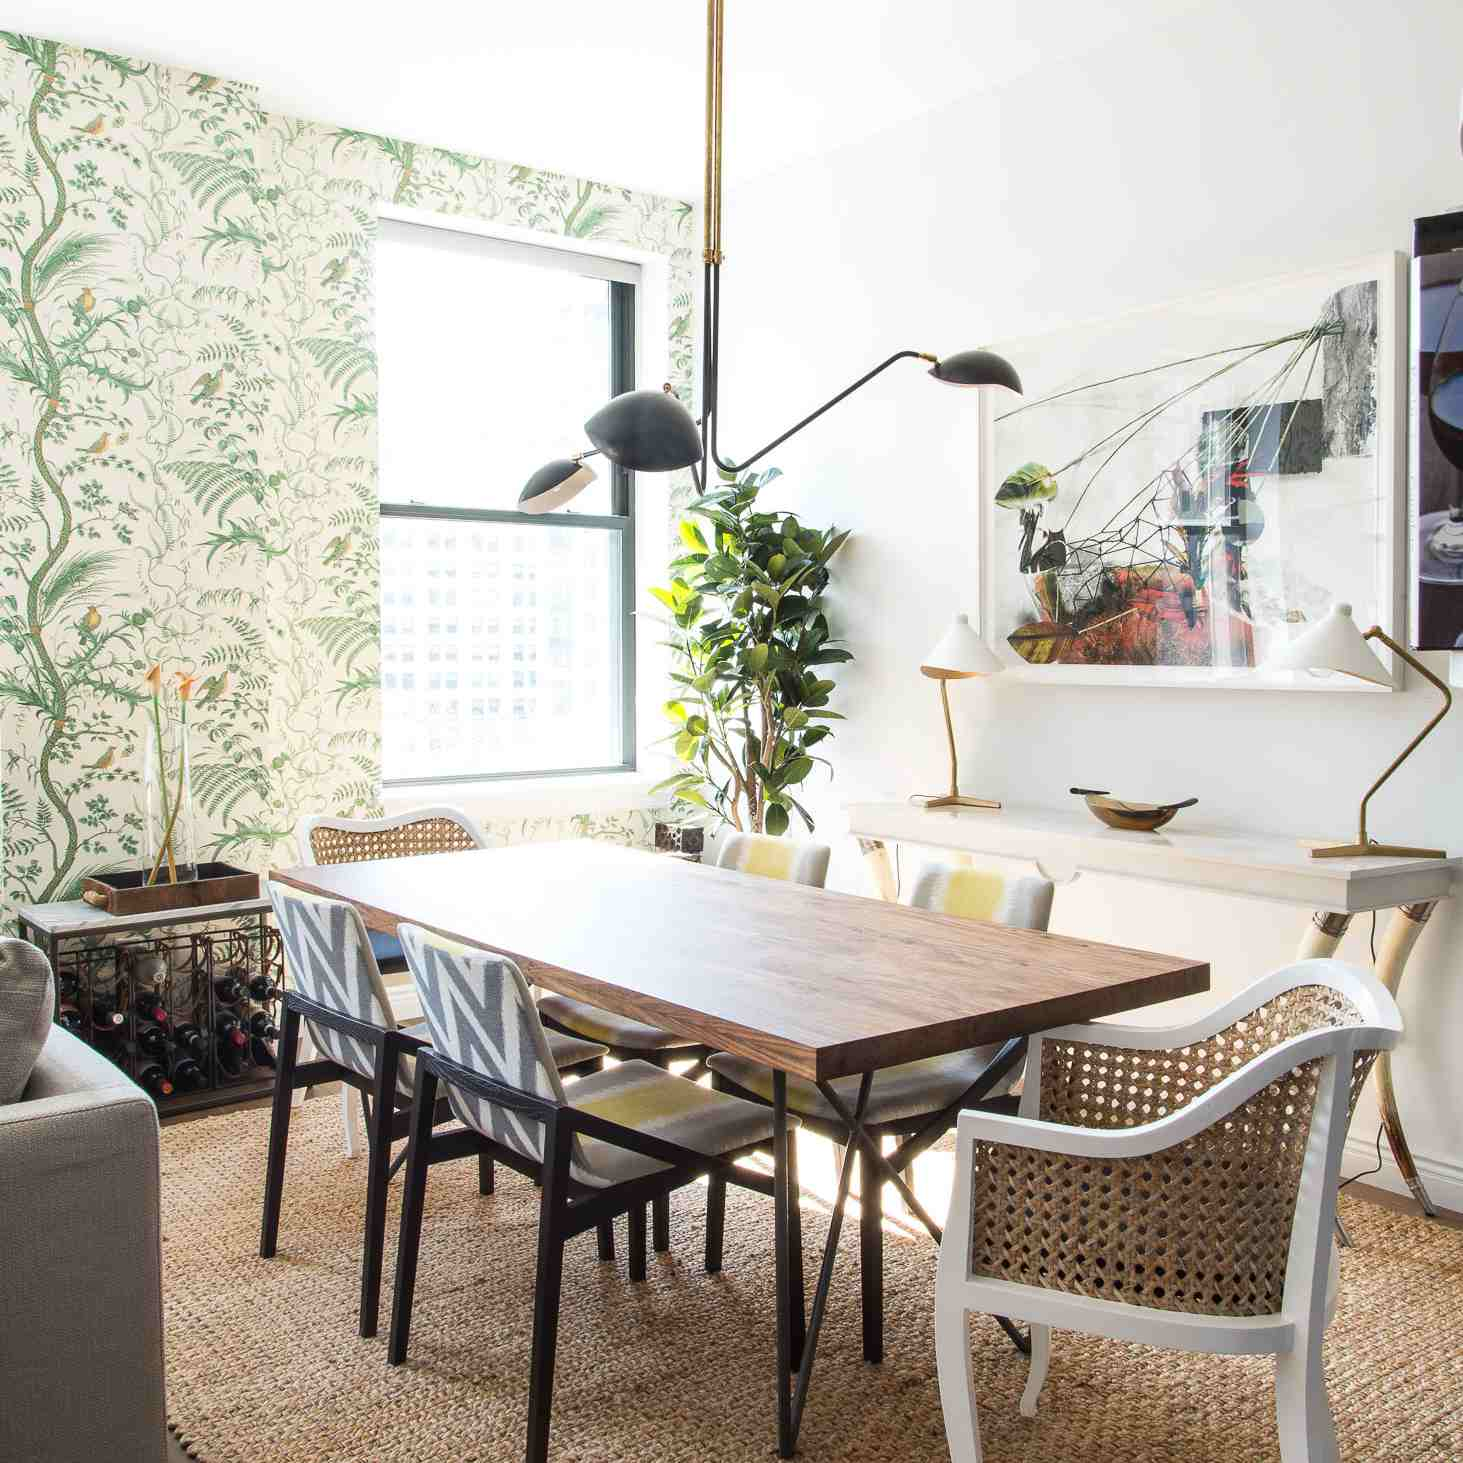 21 Daring Dining Room Ideas: 5 Things A Designer Would Never Do In A Small Dining Room